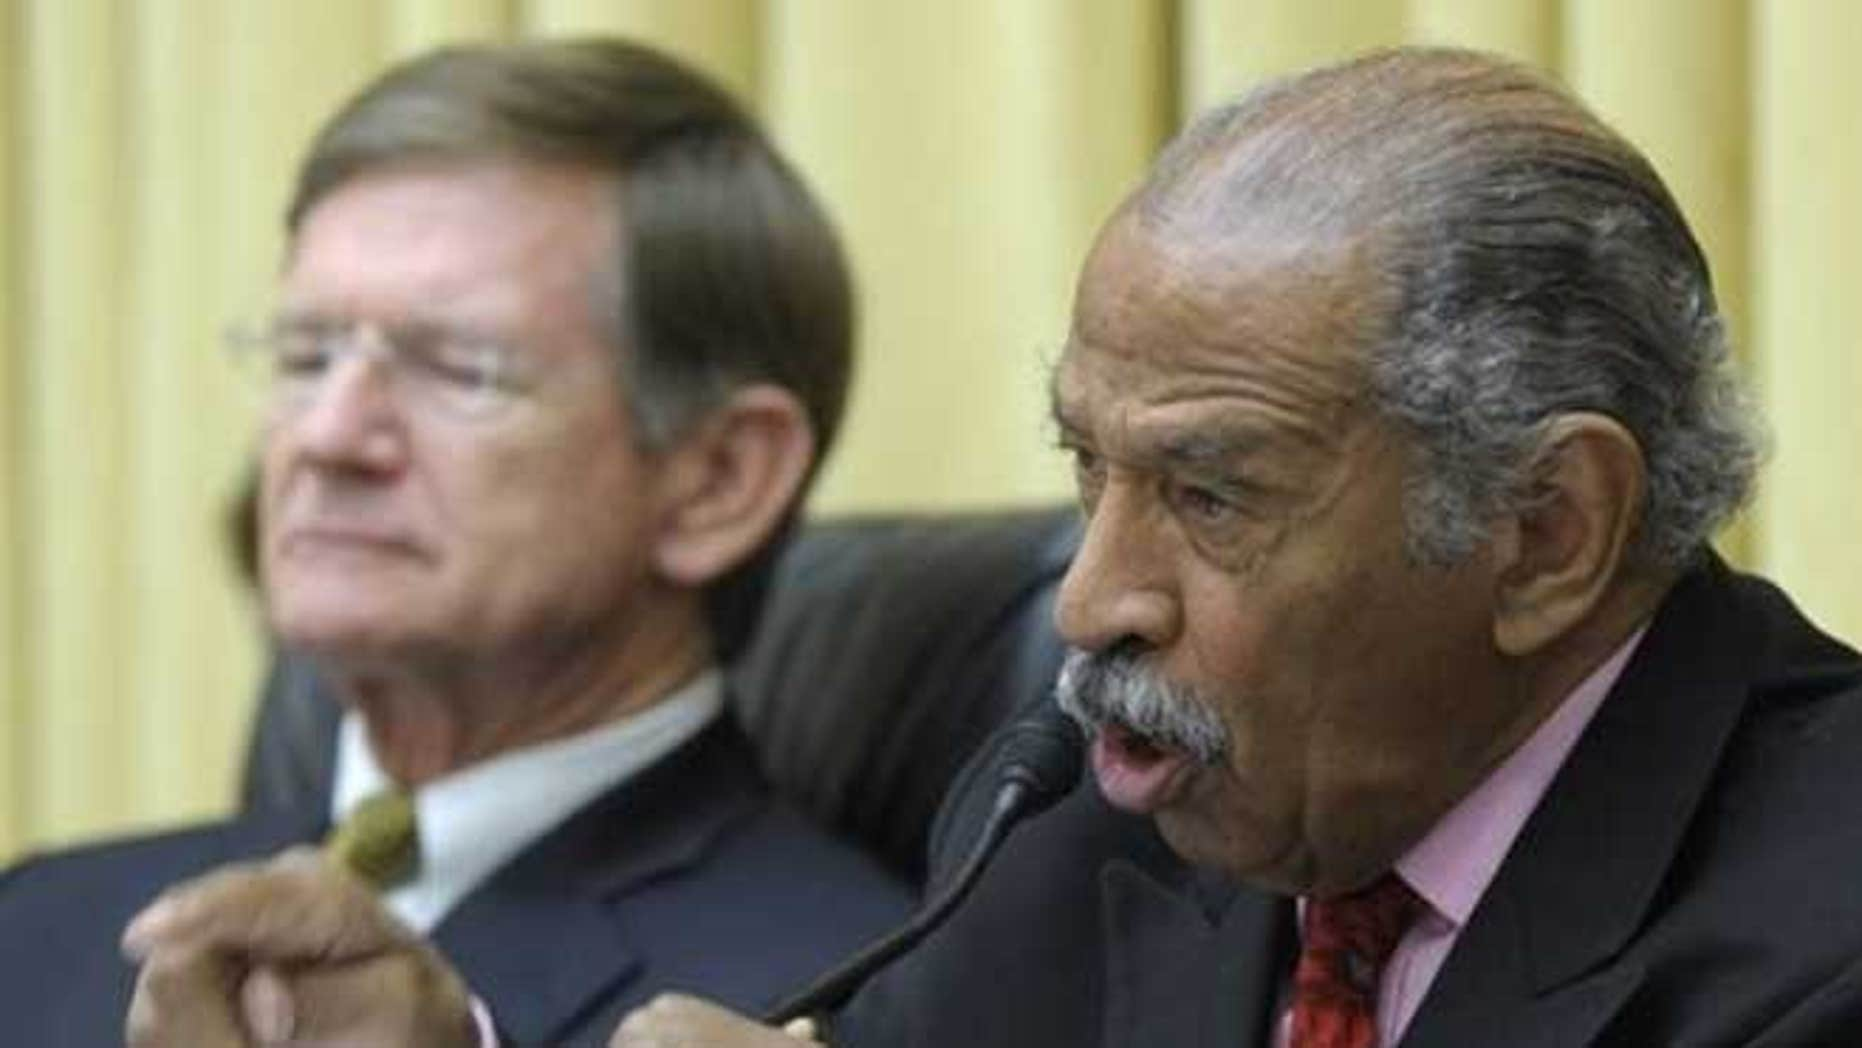 May 8, 2012: The House Judiciary Committee's ranking member Rep. John Conyers, D-Mich, right, accompanied by committee Chairman Rep. Lamar Smith, R-Texas, speaks on Capitol Hill in Washington.